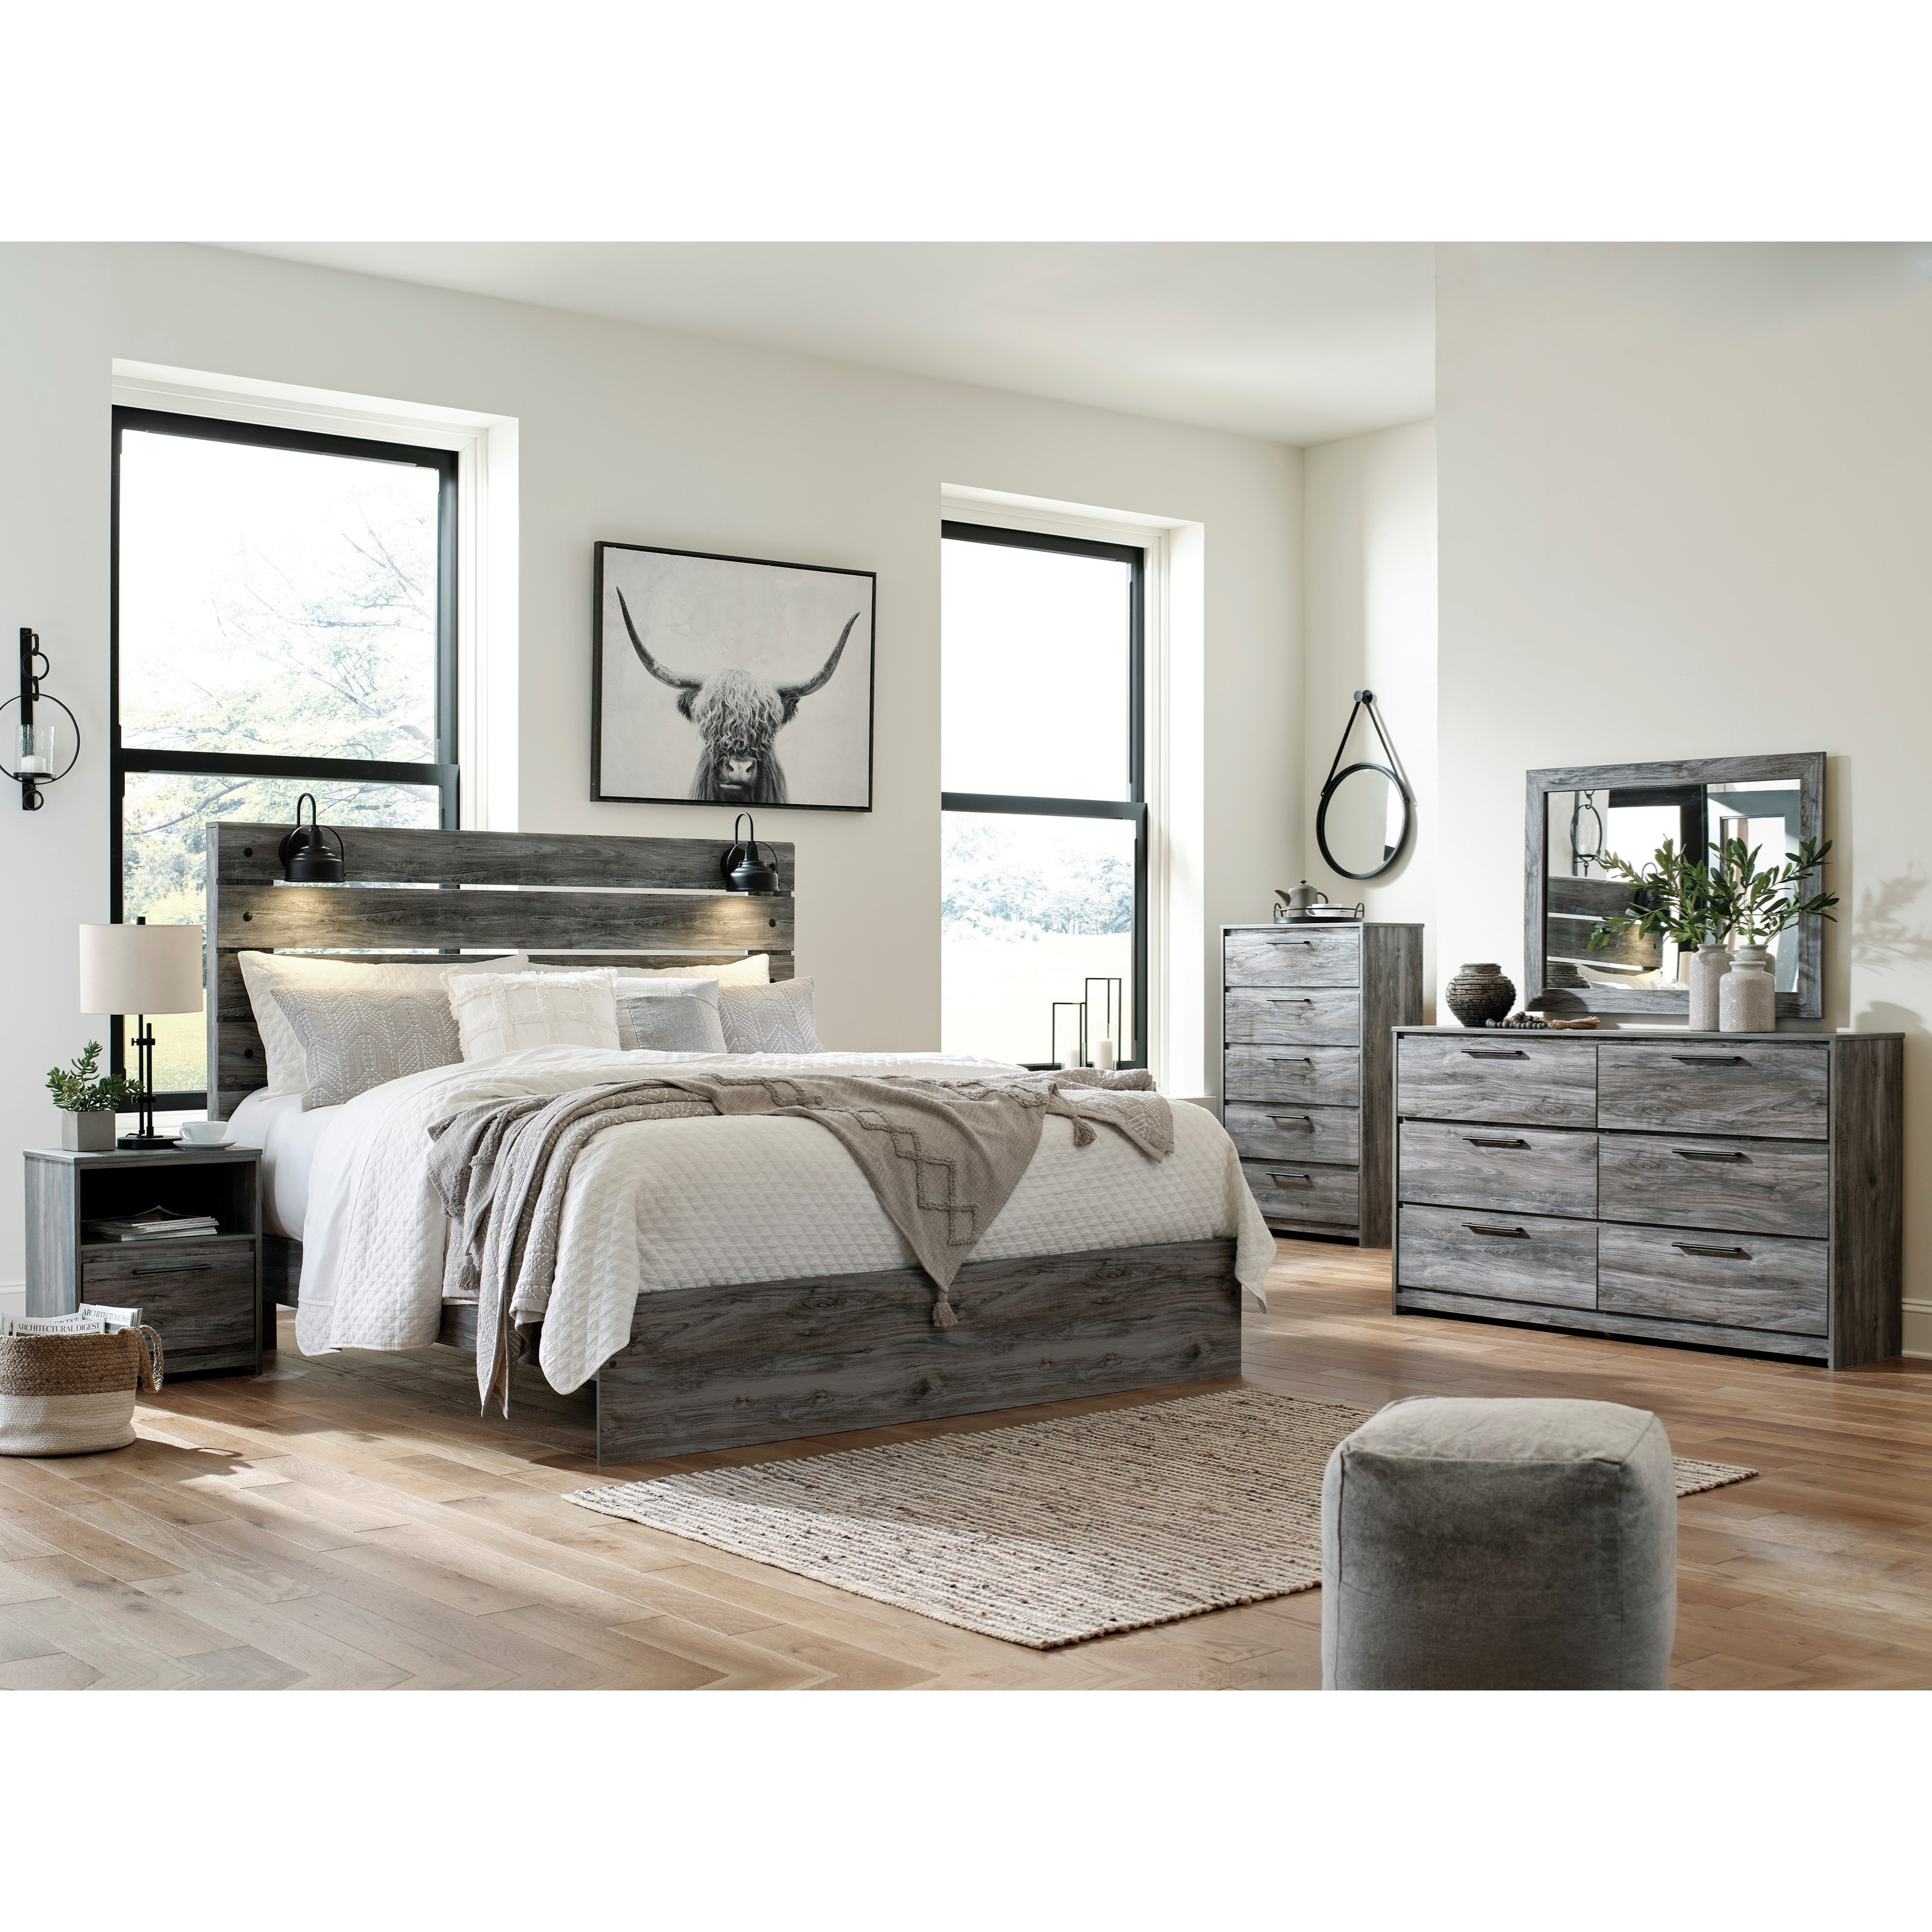 Baystorm King Bedroom Group by Benchcraft at Virginia Furniture Market